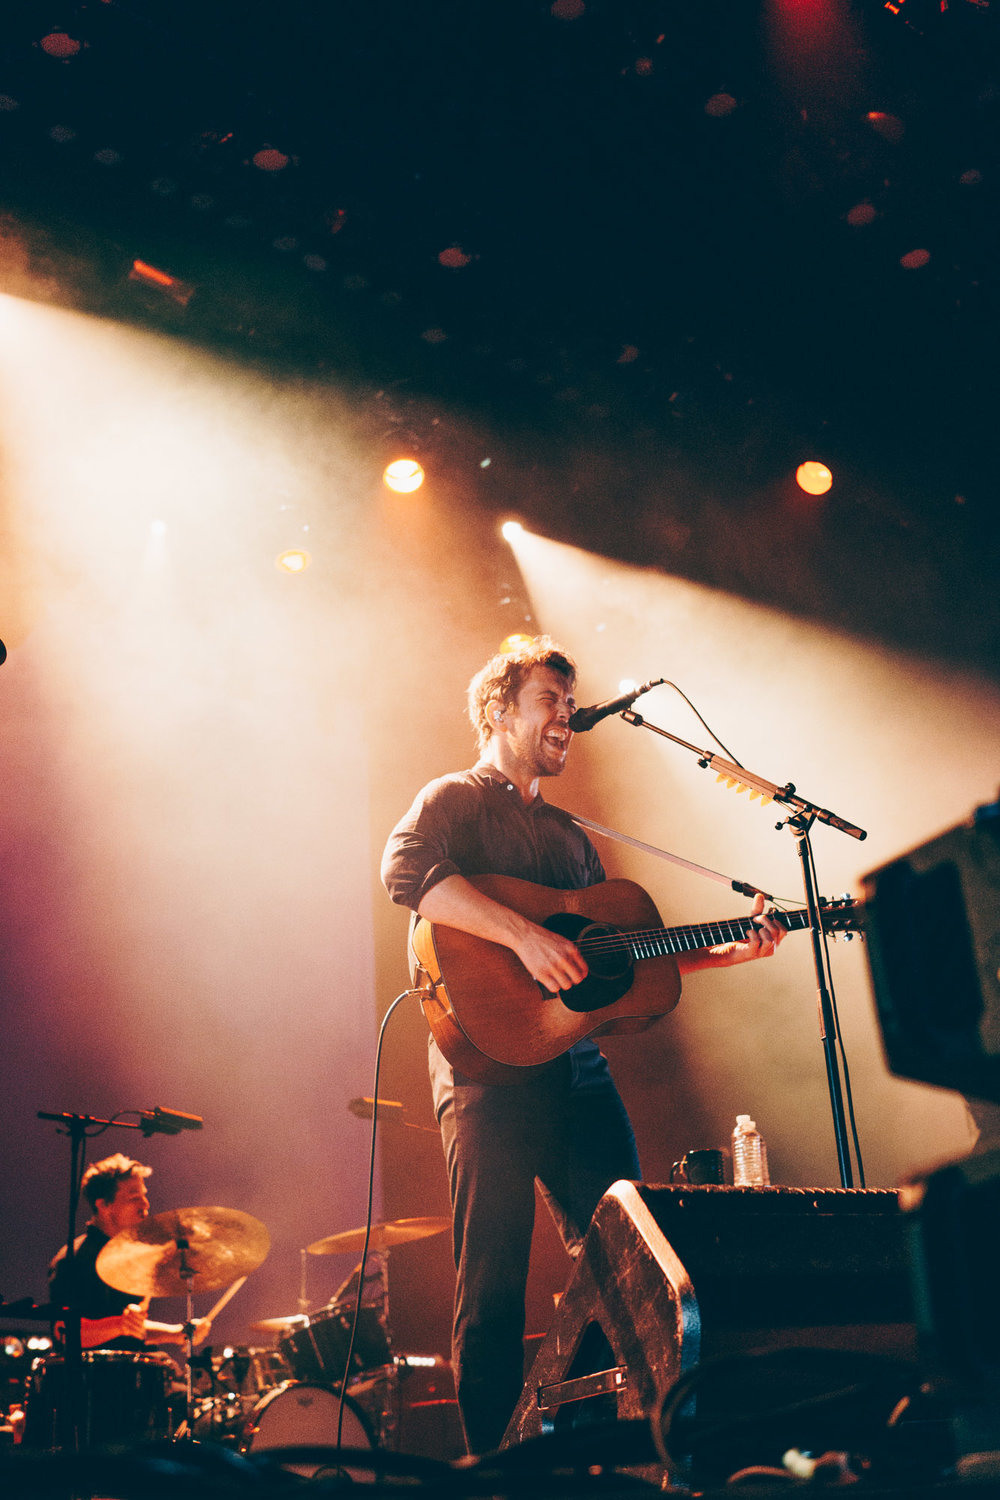 Fleet Foxes - Britton Strickland (4 of 16).jpg